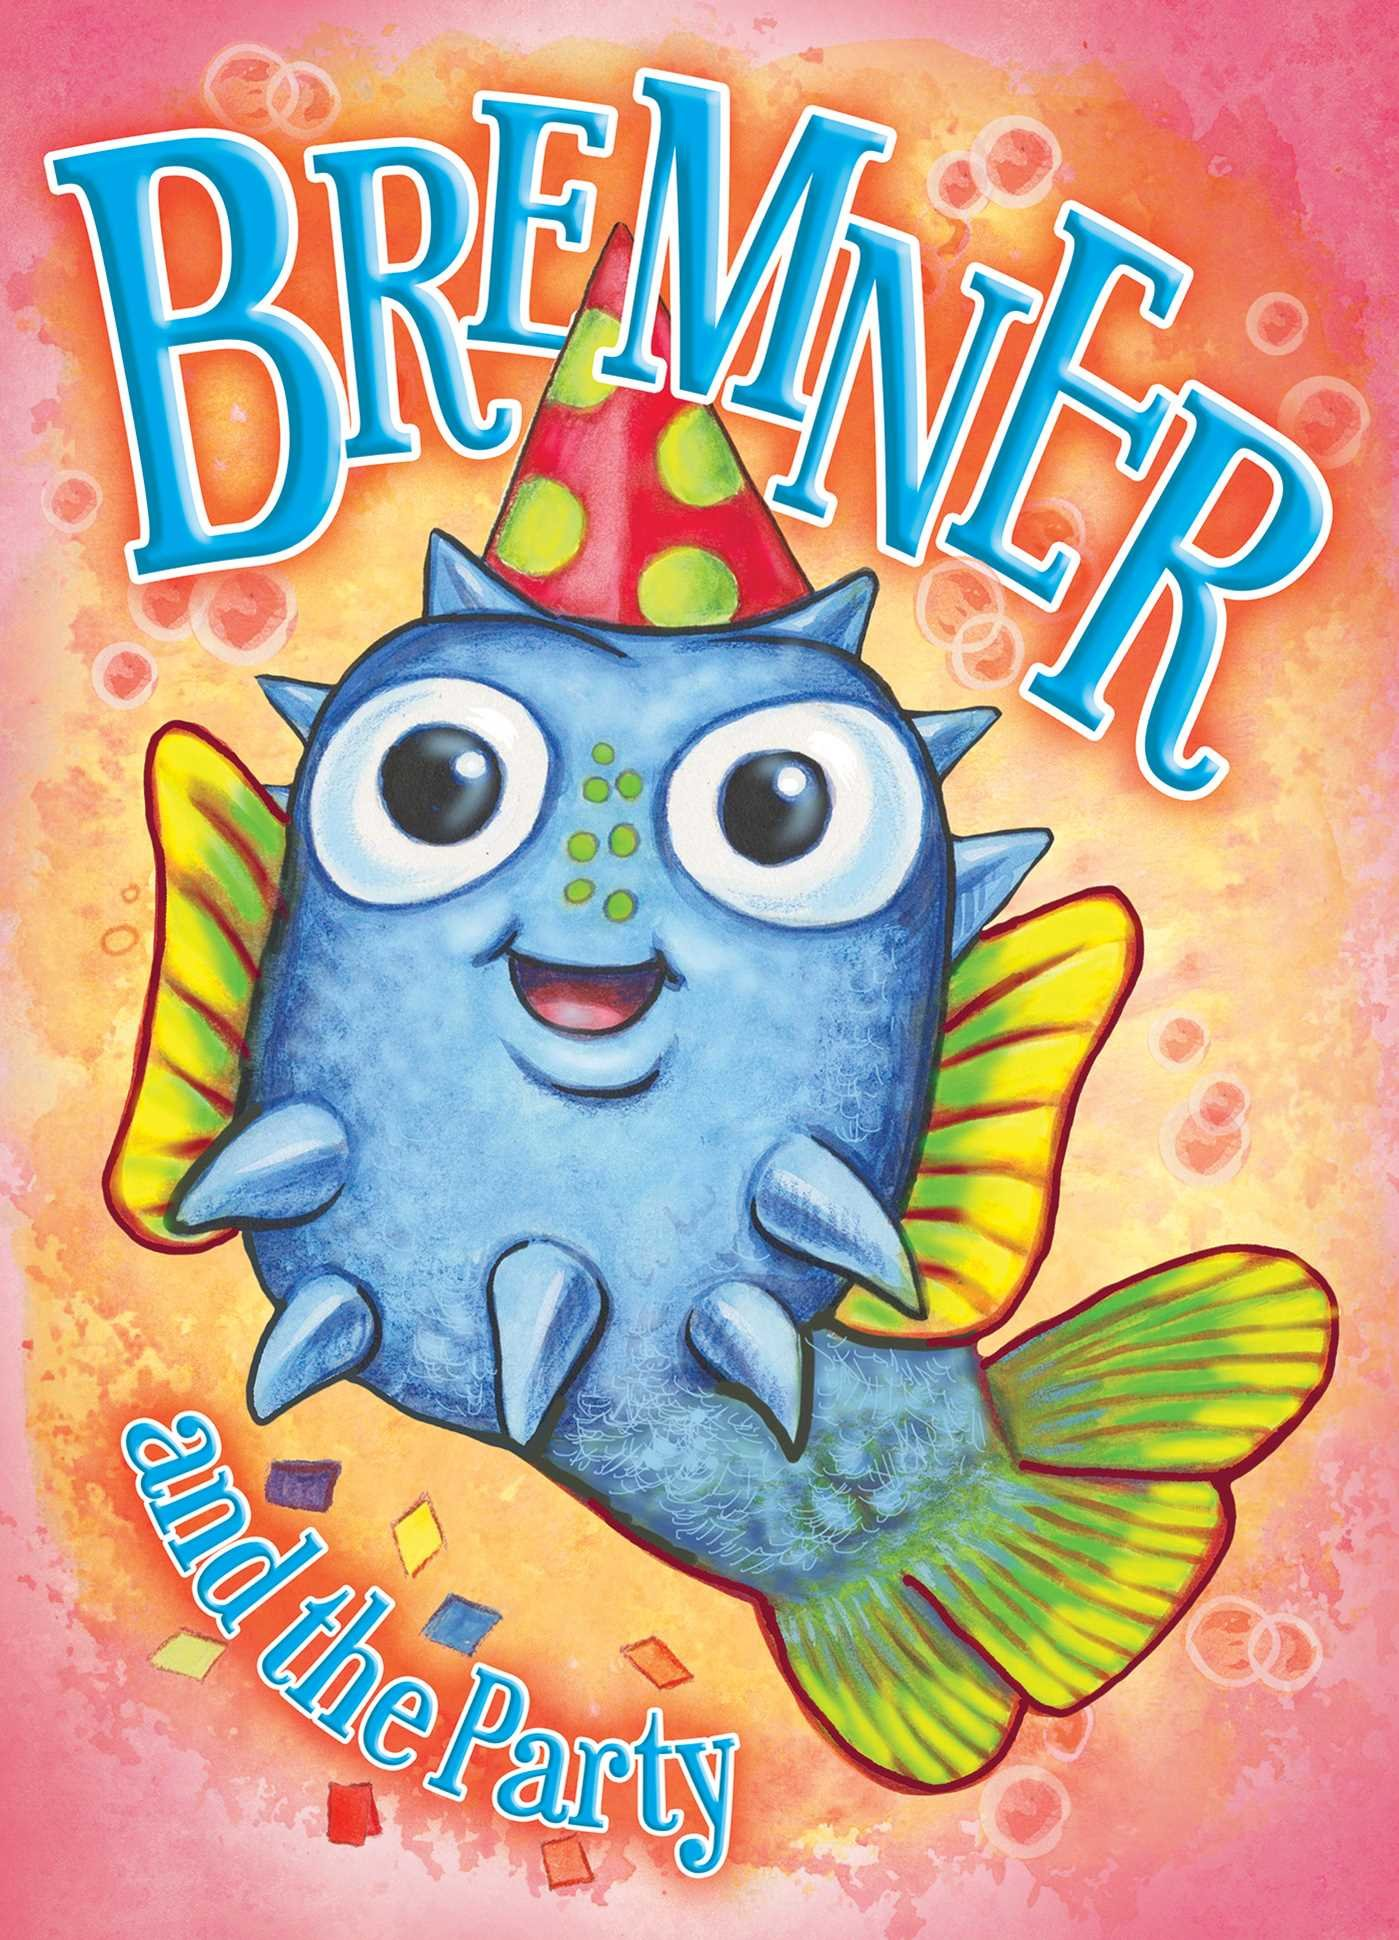 Bremner & the Party (Ripley's Picture Books)